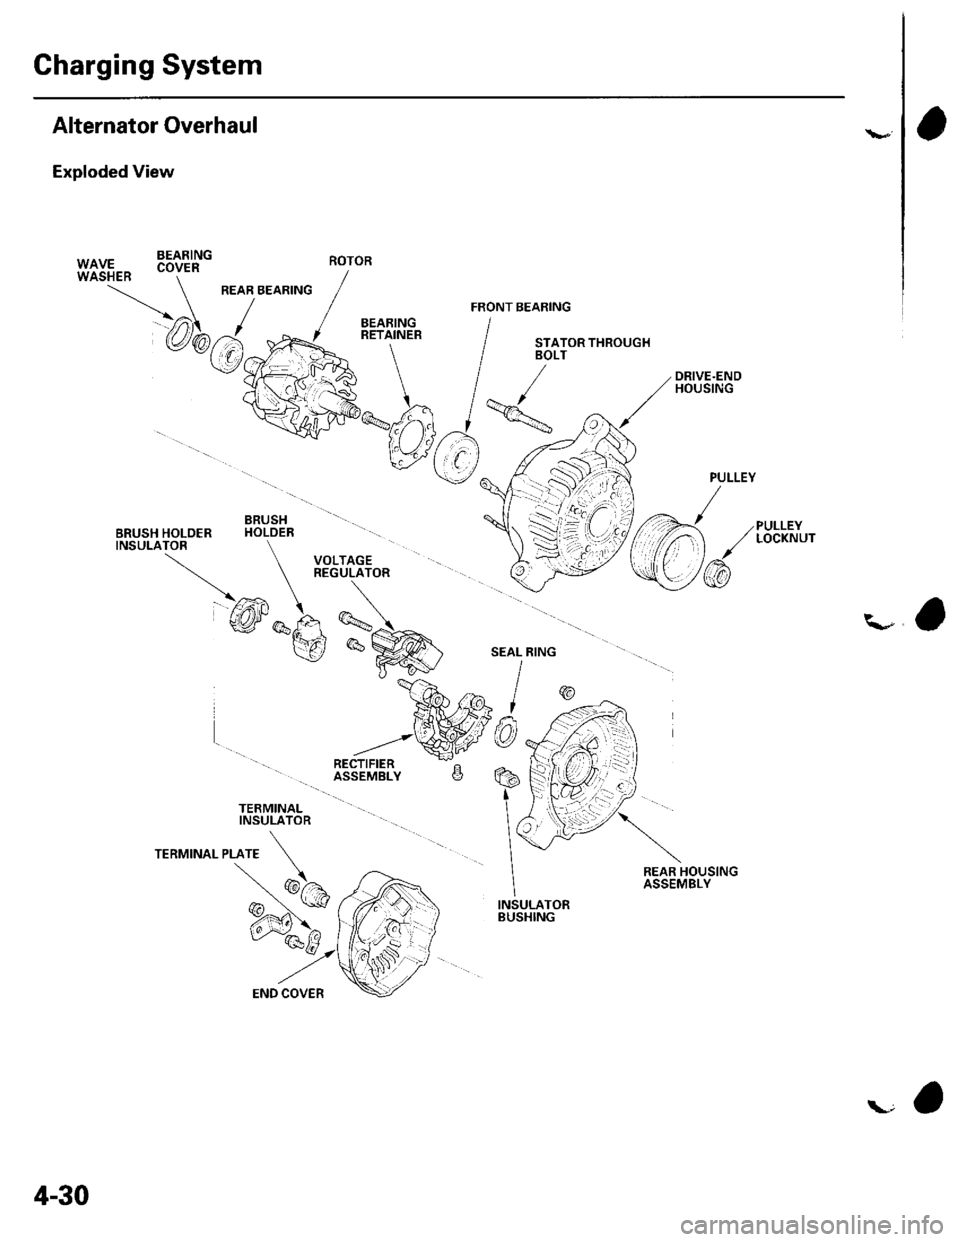 Coleman Powermate Air Compressor Wiring Diagram Brute